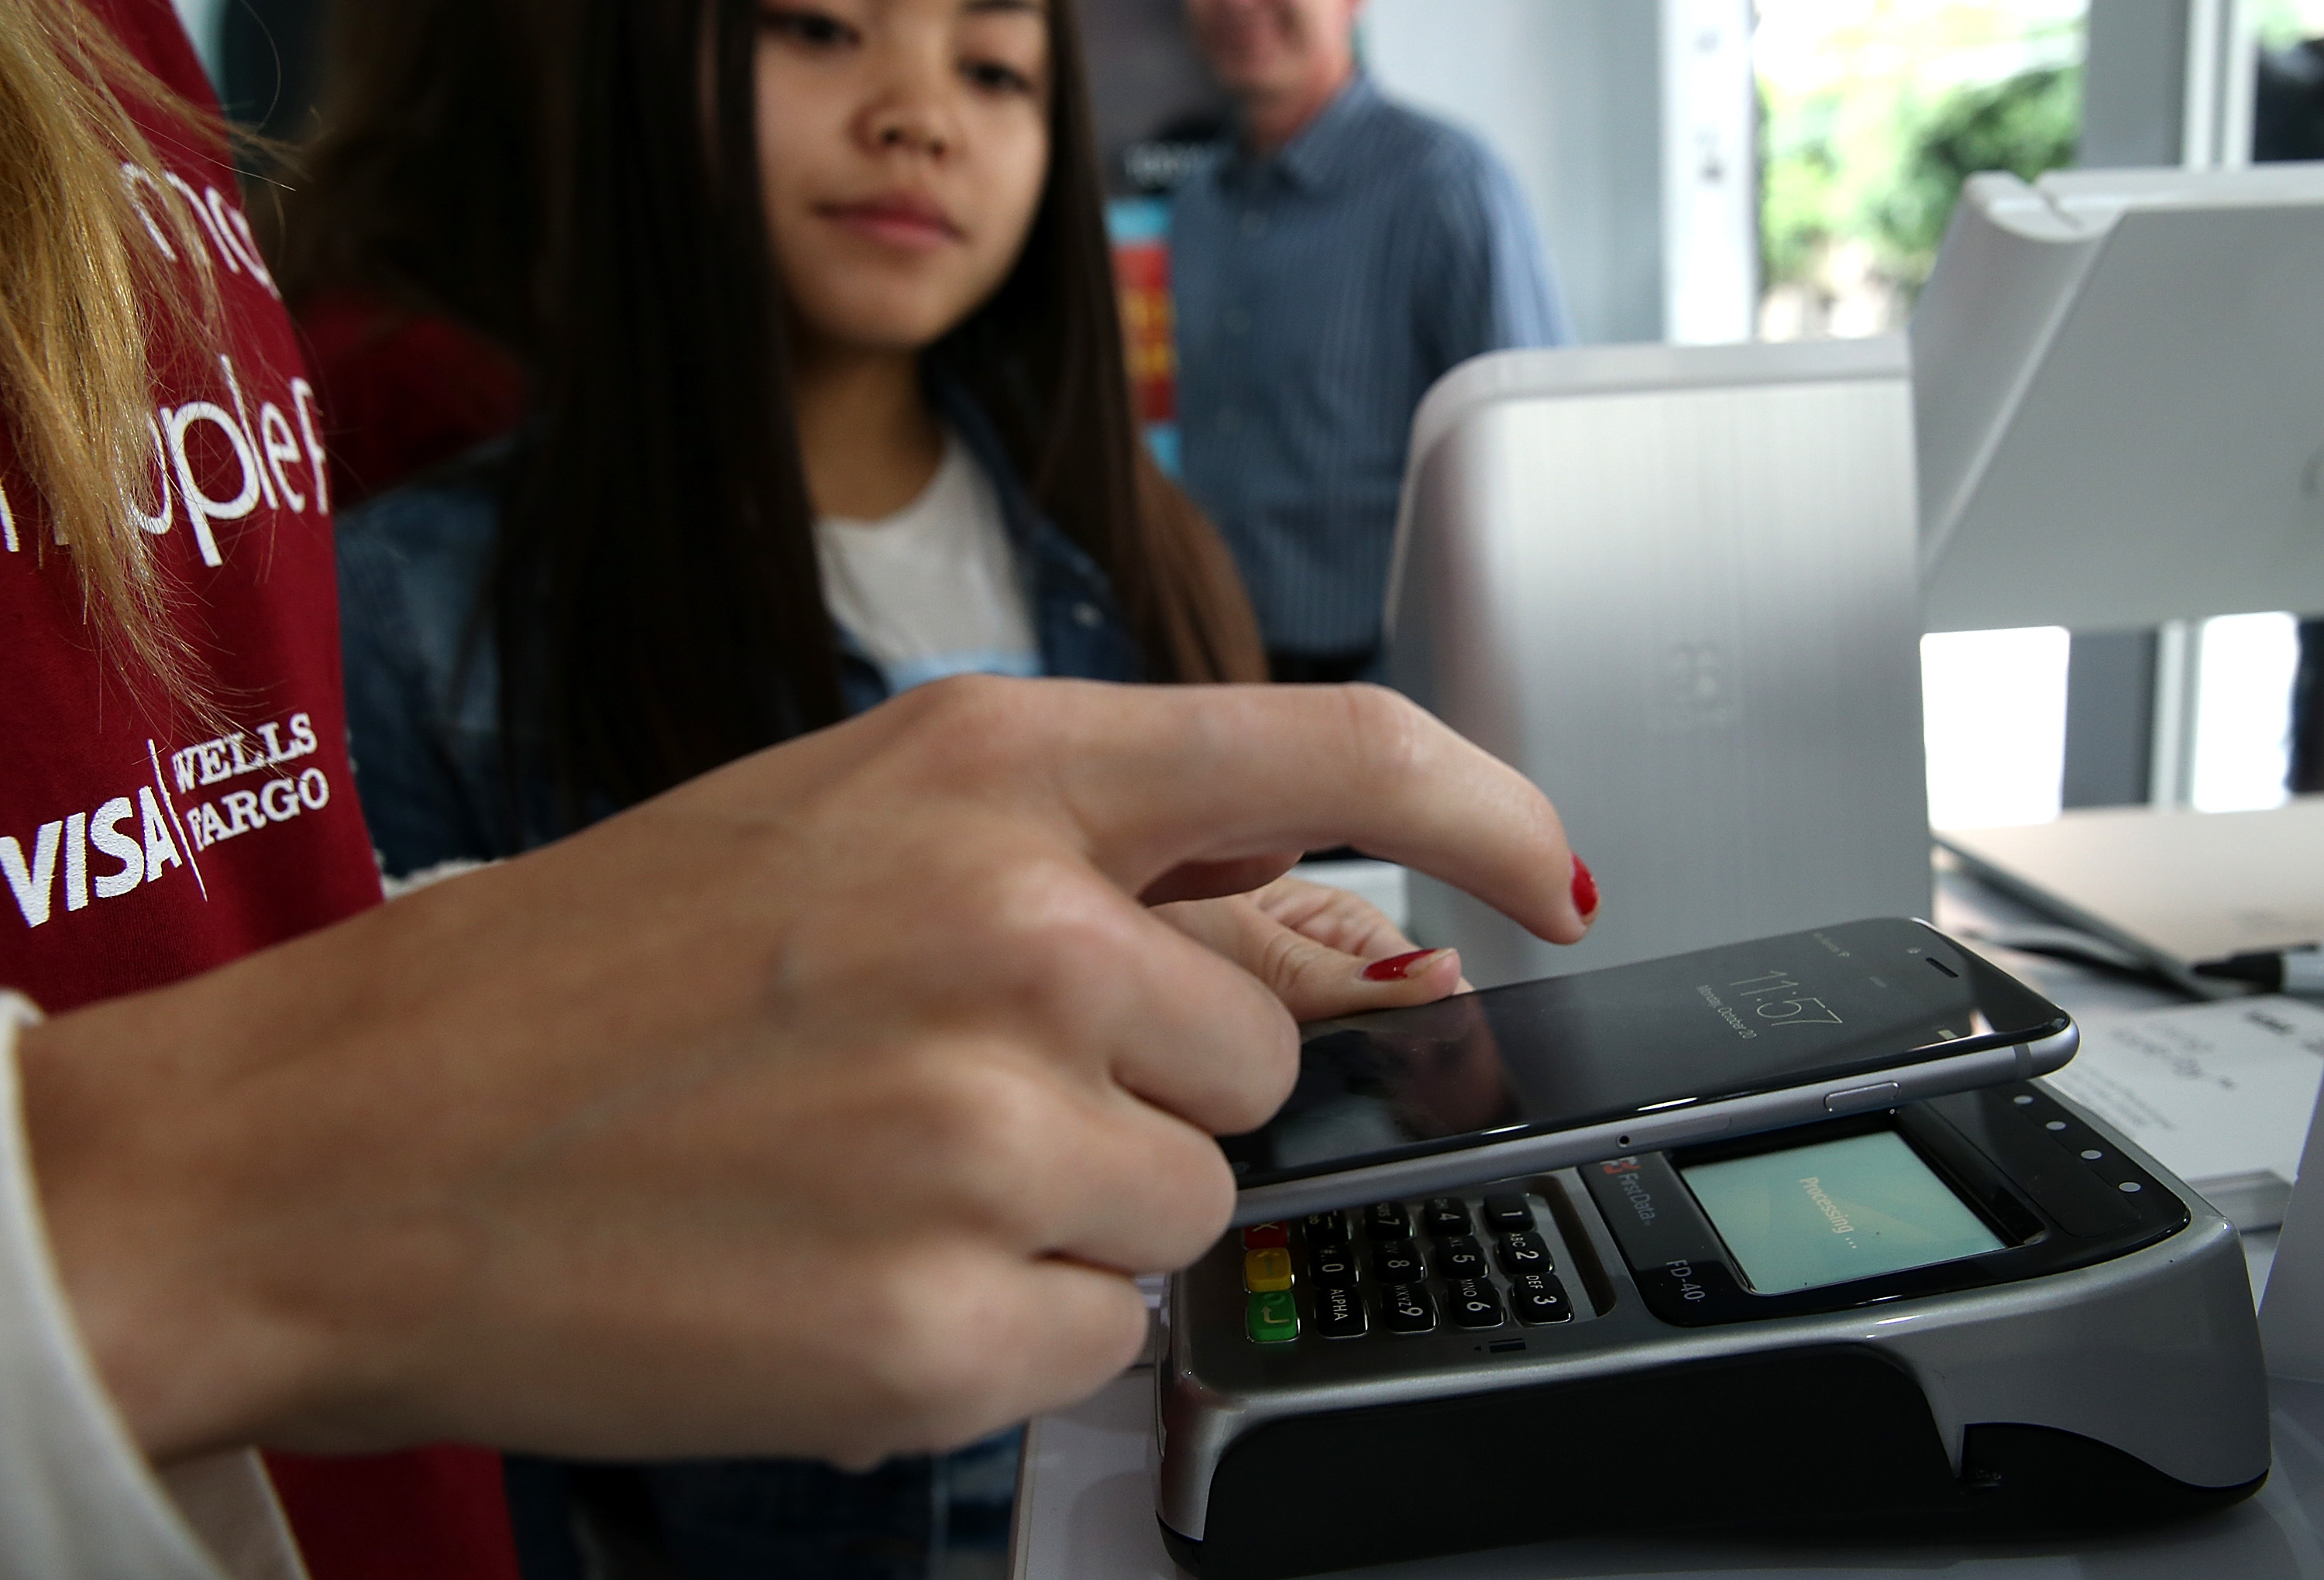 A worker demonstrates Apple Pay inside a mobile kiosk sponsored by Visa and Wells Fargo to demonstrate the new Apple Pay mobile payment system on October 20, 2014 in San Francisco City.